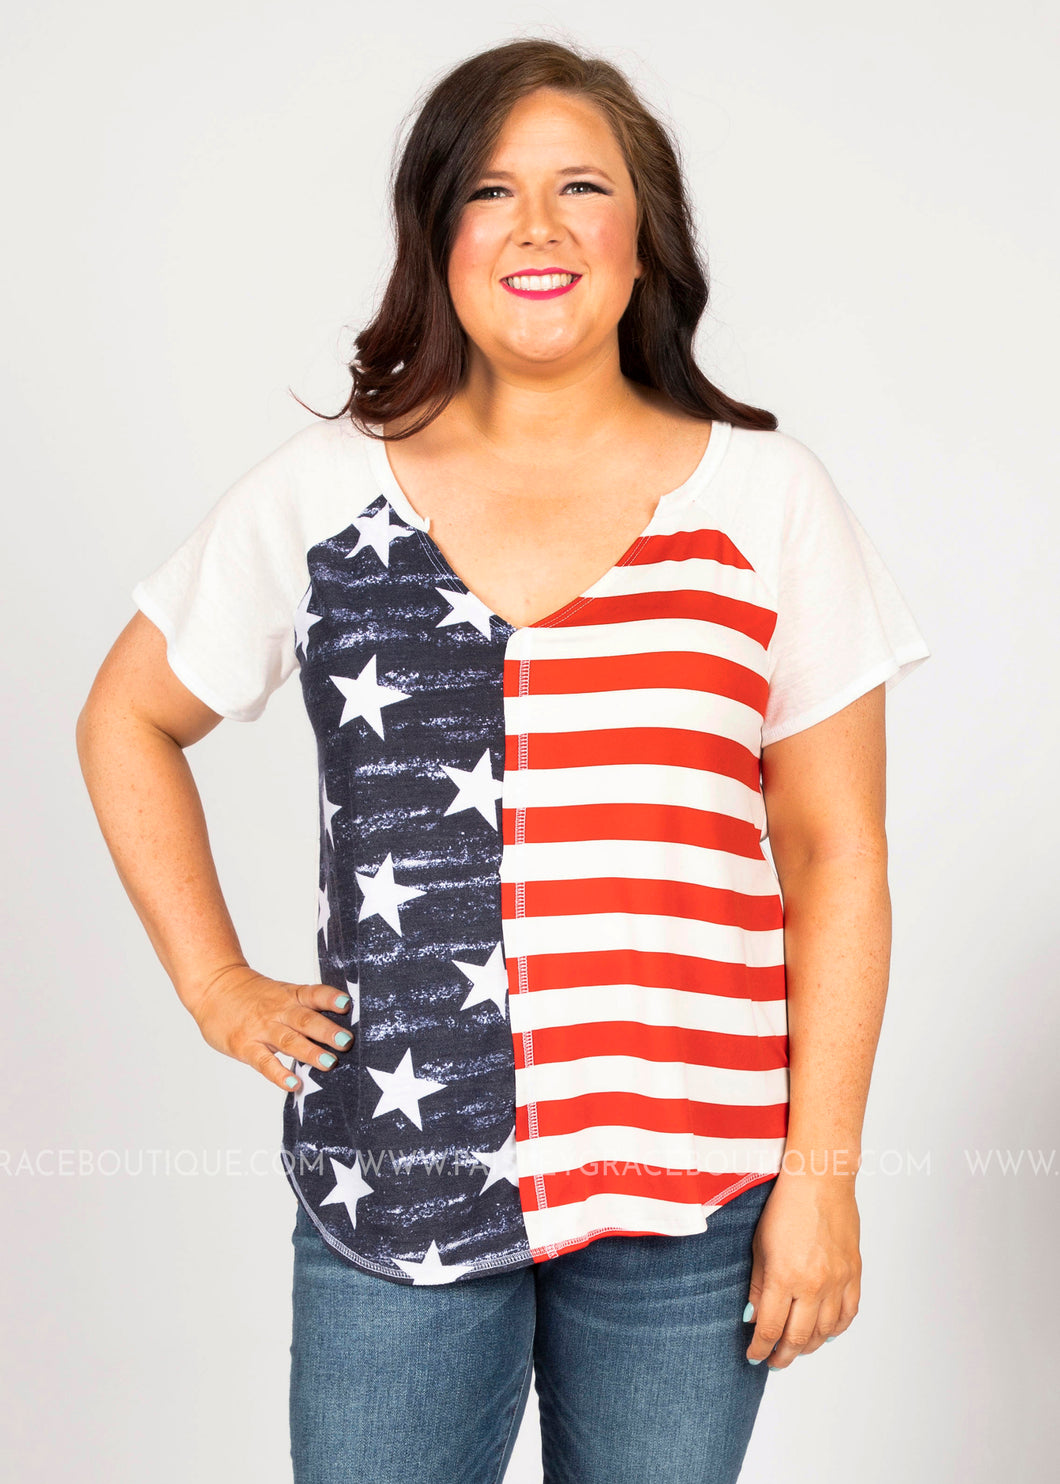 Freedom Top - FINAL SALE